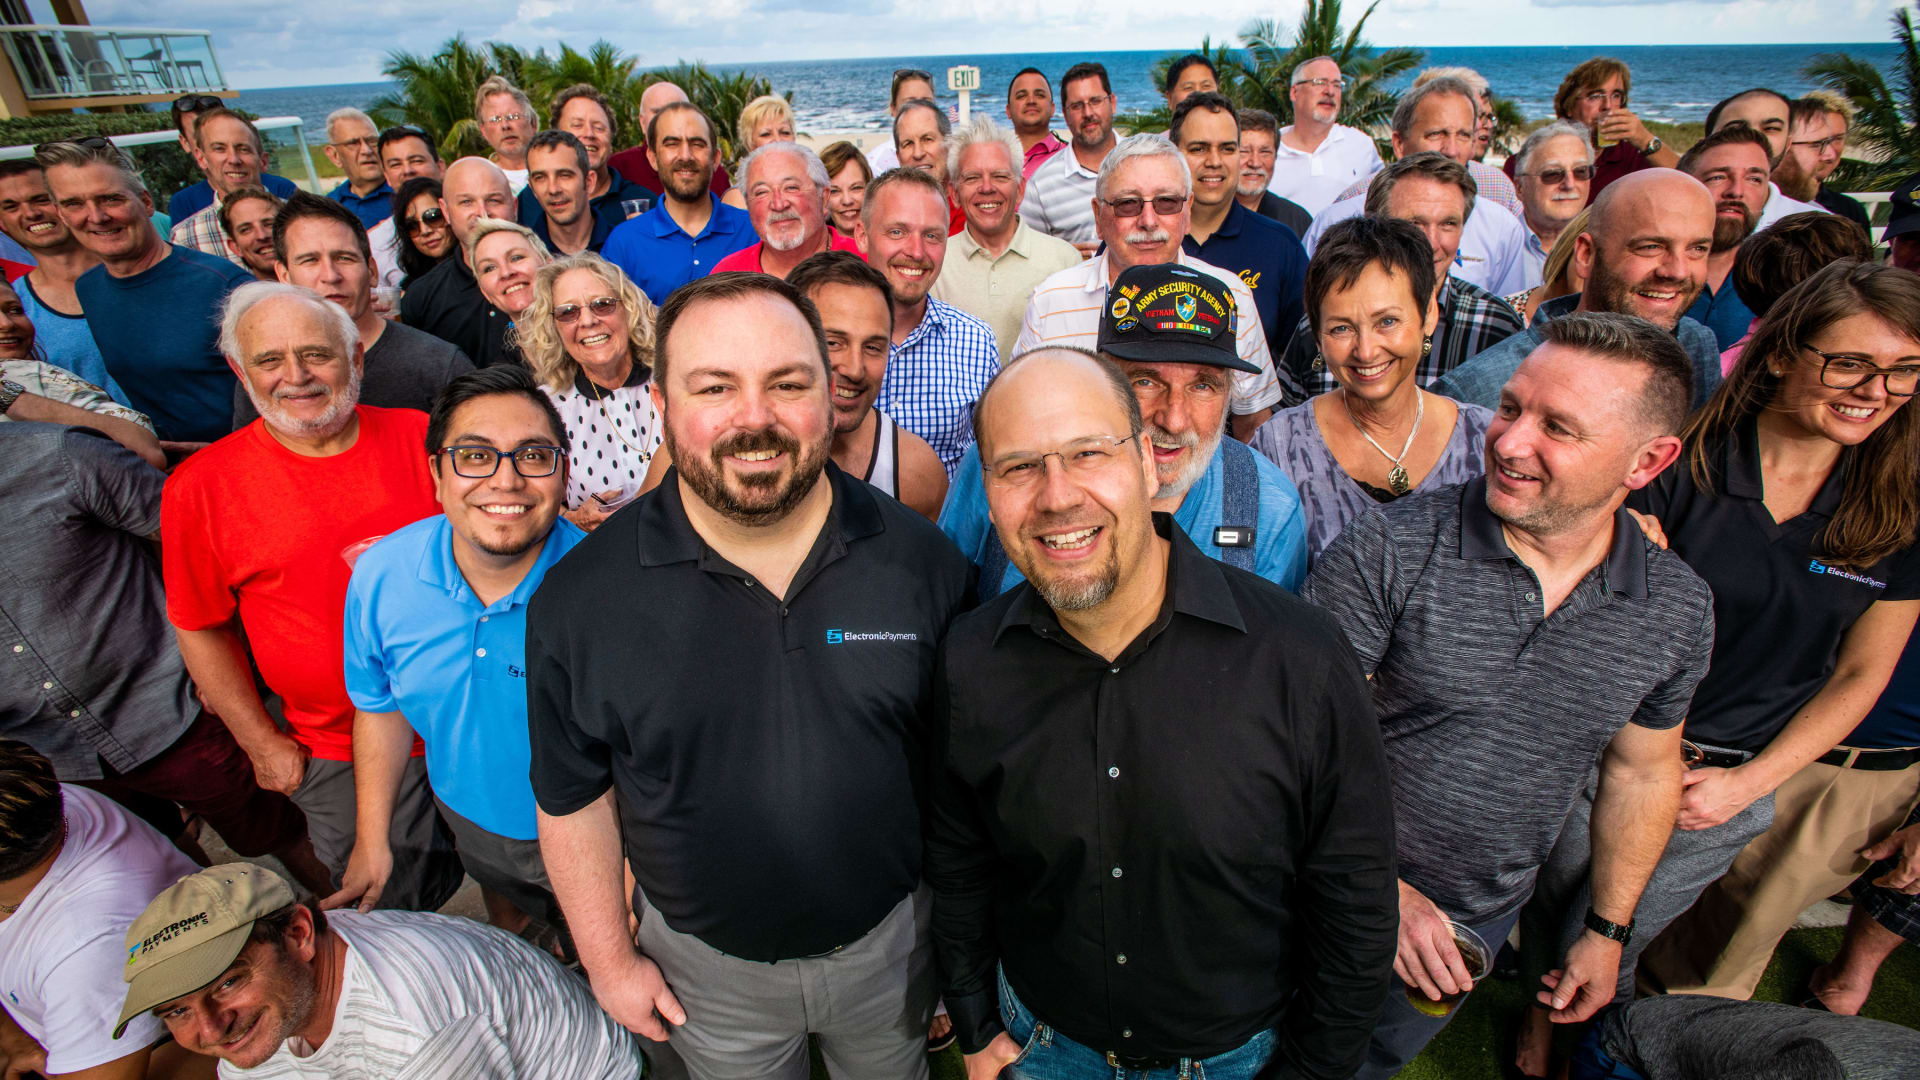 Michael Nardy, CEO (front center right), Matthew Findlan, COO (front center left), and team